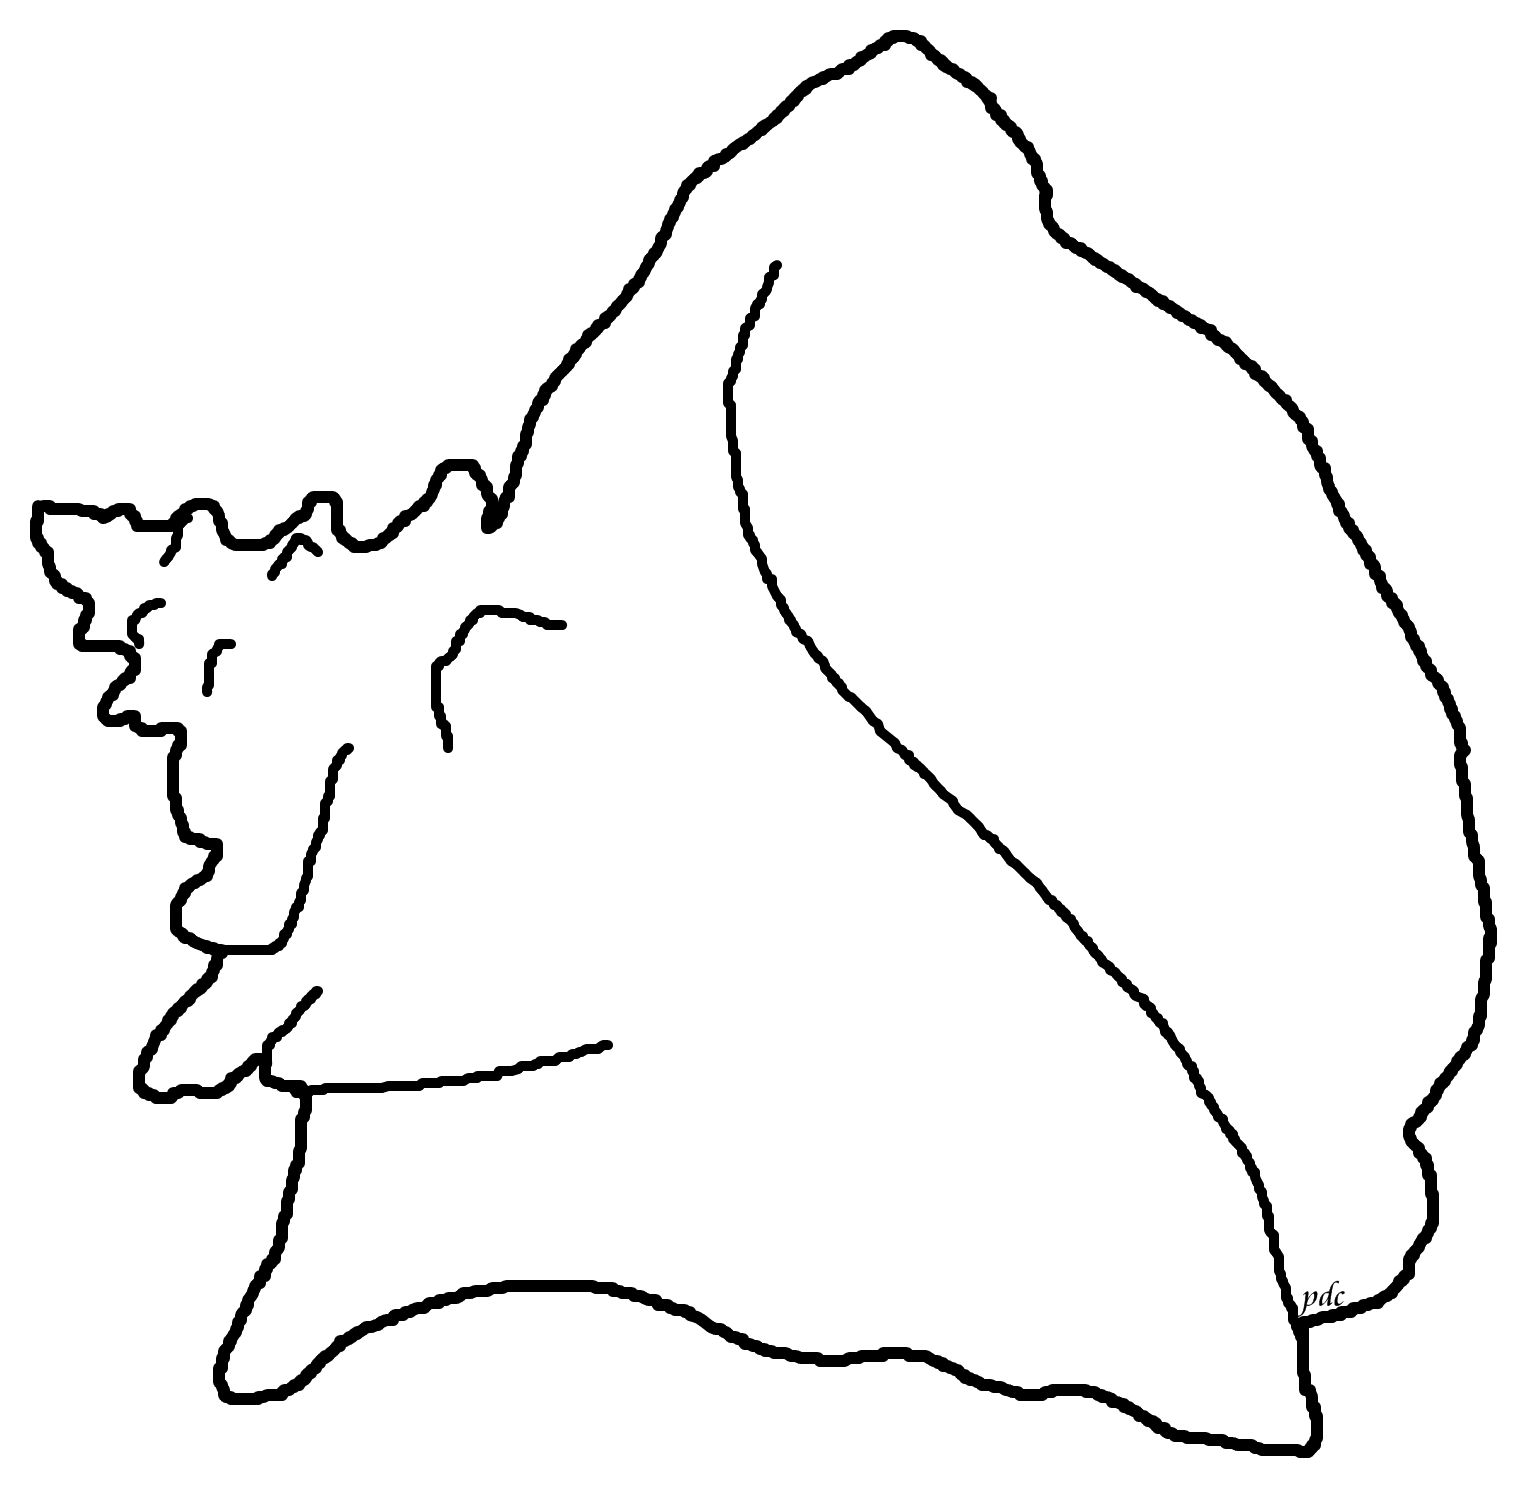 How to draw conch shell queen or pink conch coloring page how to draw conch shell queen or pink conch coloring page seashells by millhill maxwellsz